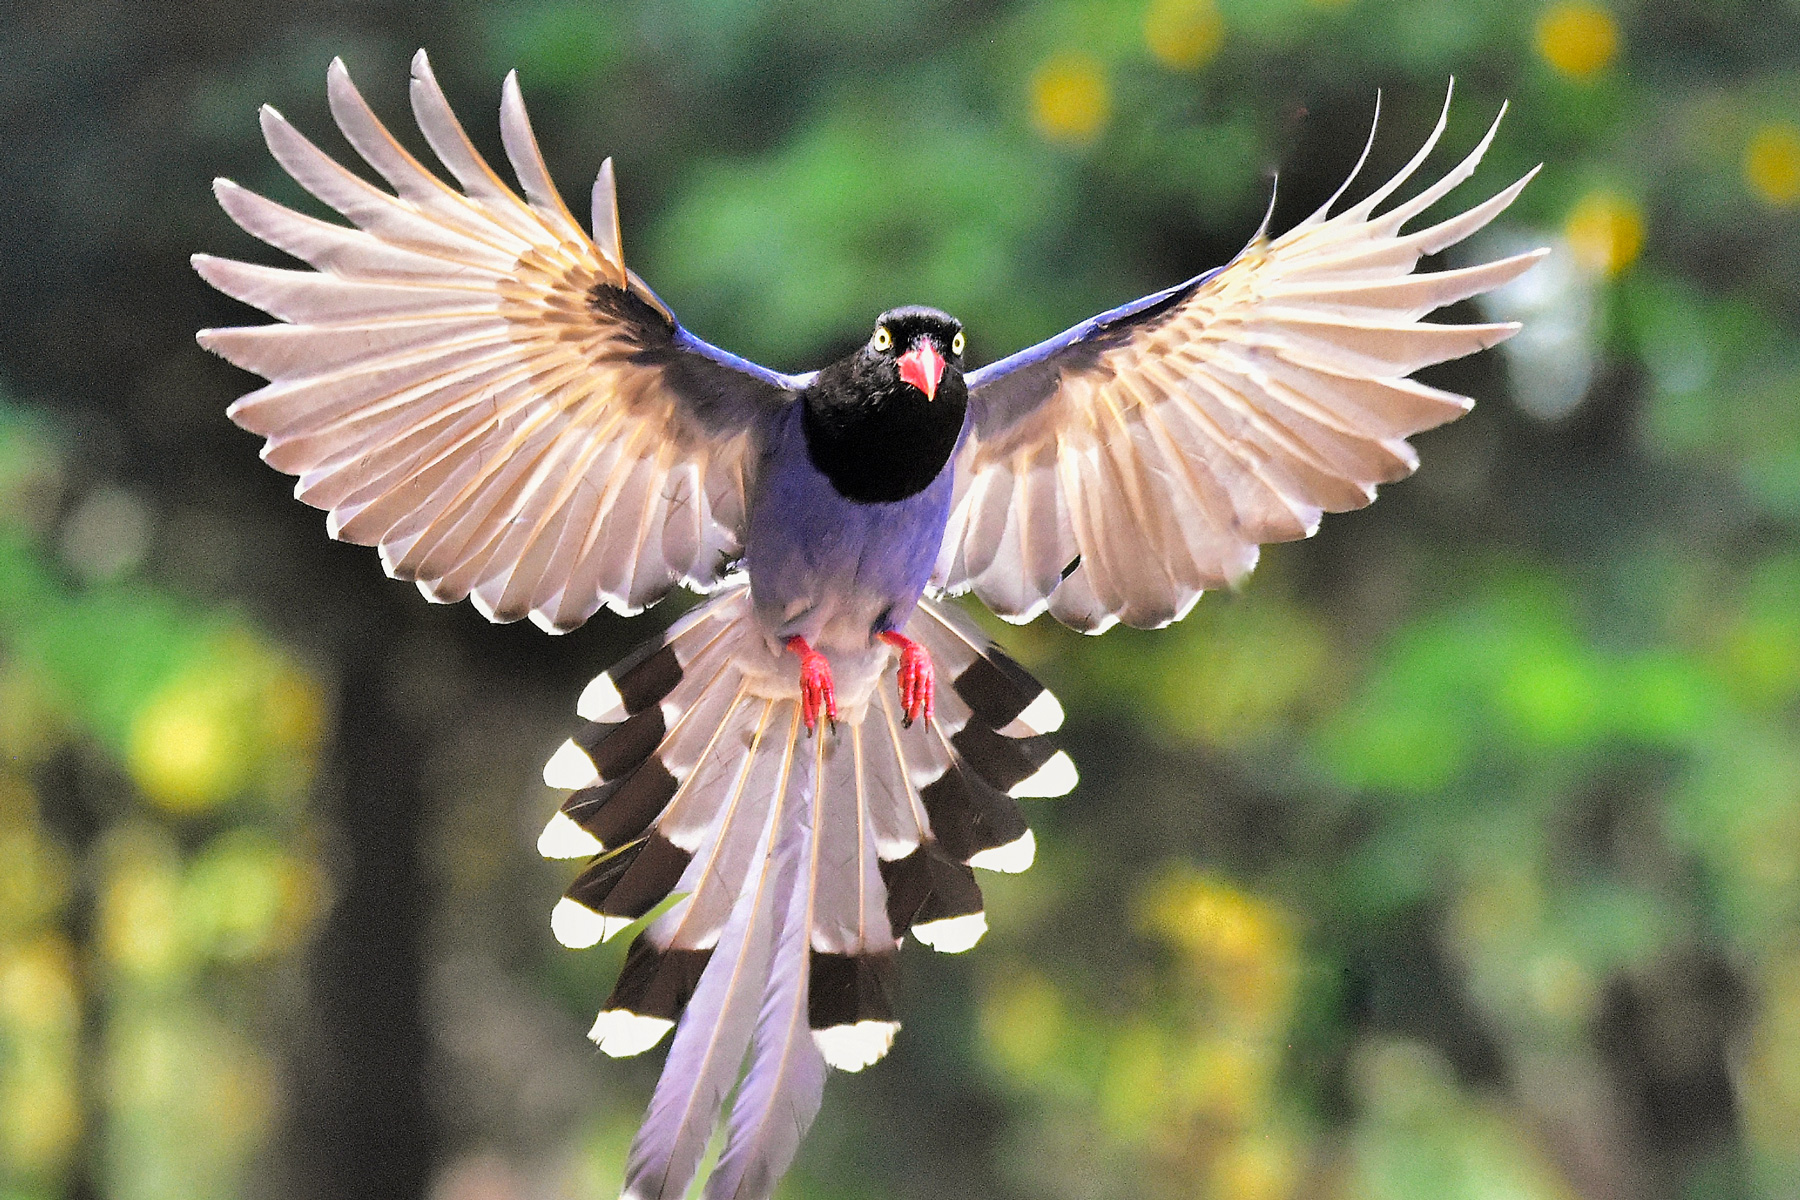 How birds fly: New USC study examines the evolution of flight feathers